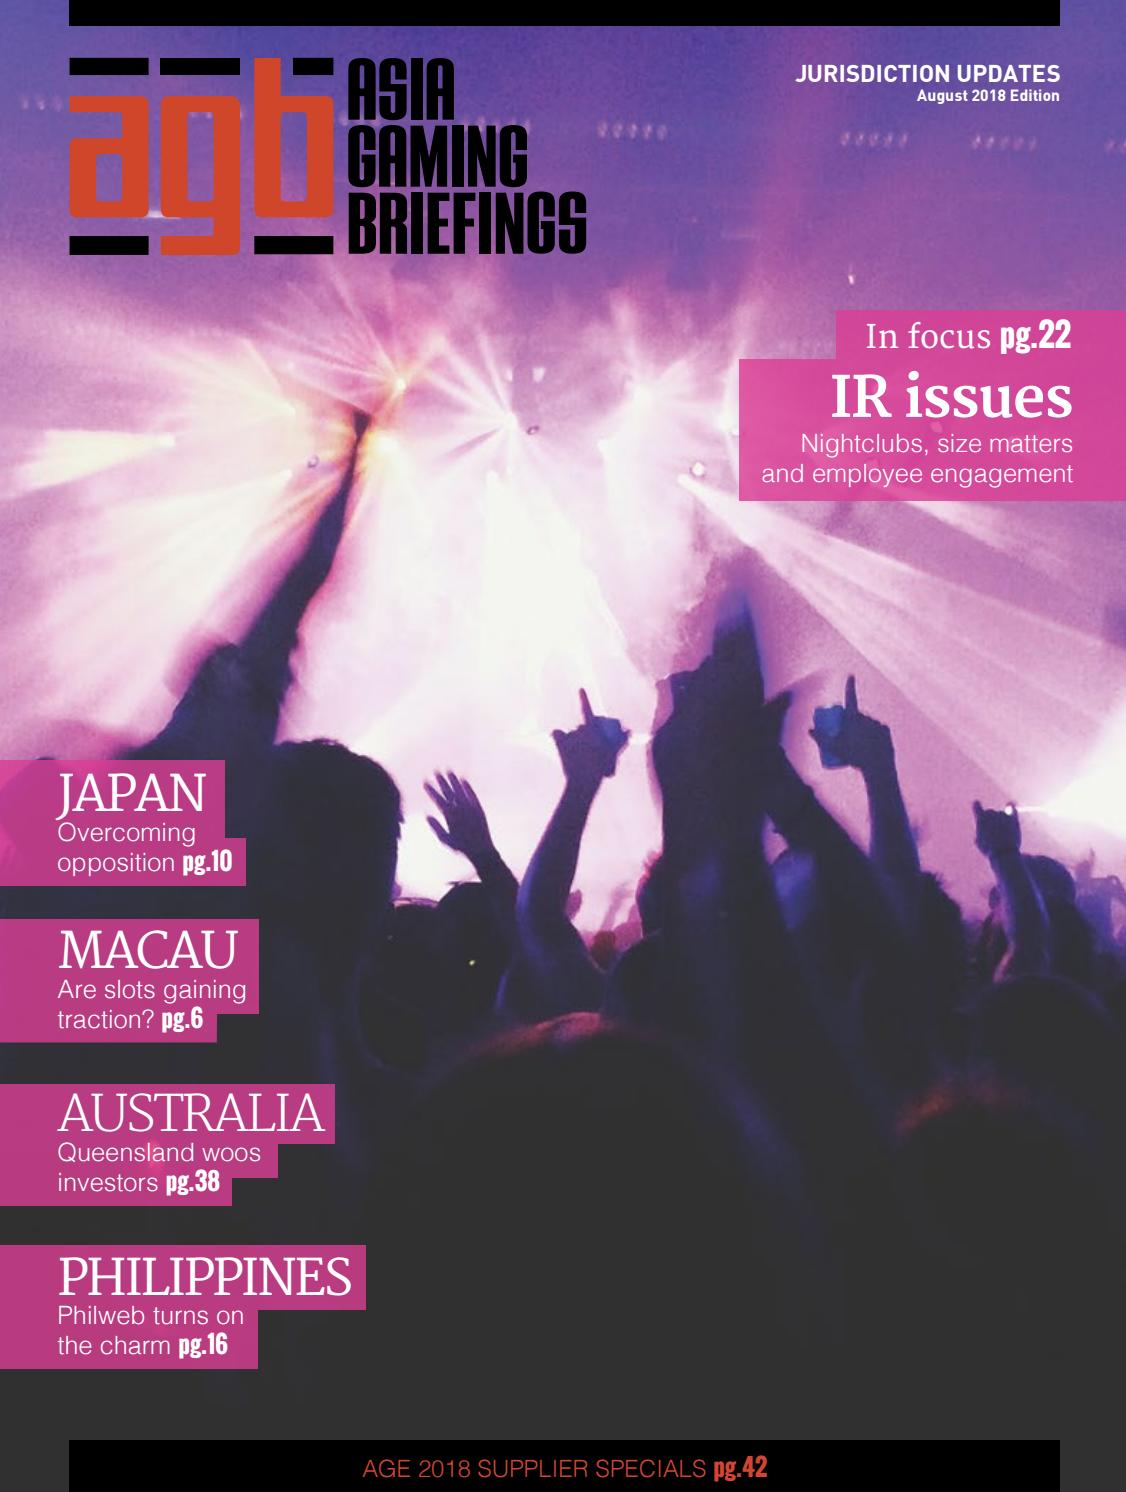 Agbriefings August 2018 By Asia Gaming Brief Issuu Tiket Genting Dream Cruise Special New Year Dep 30 December